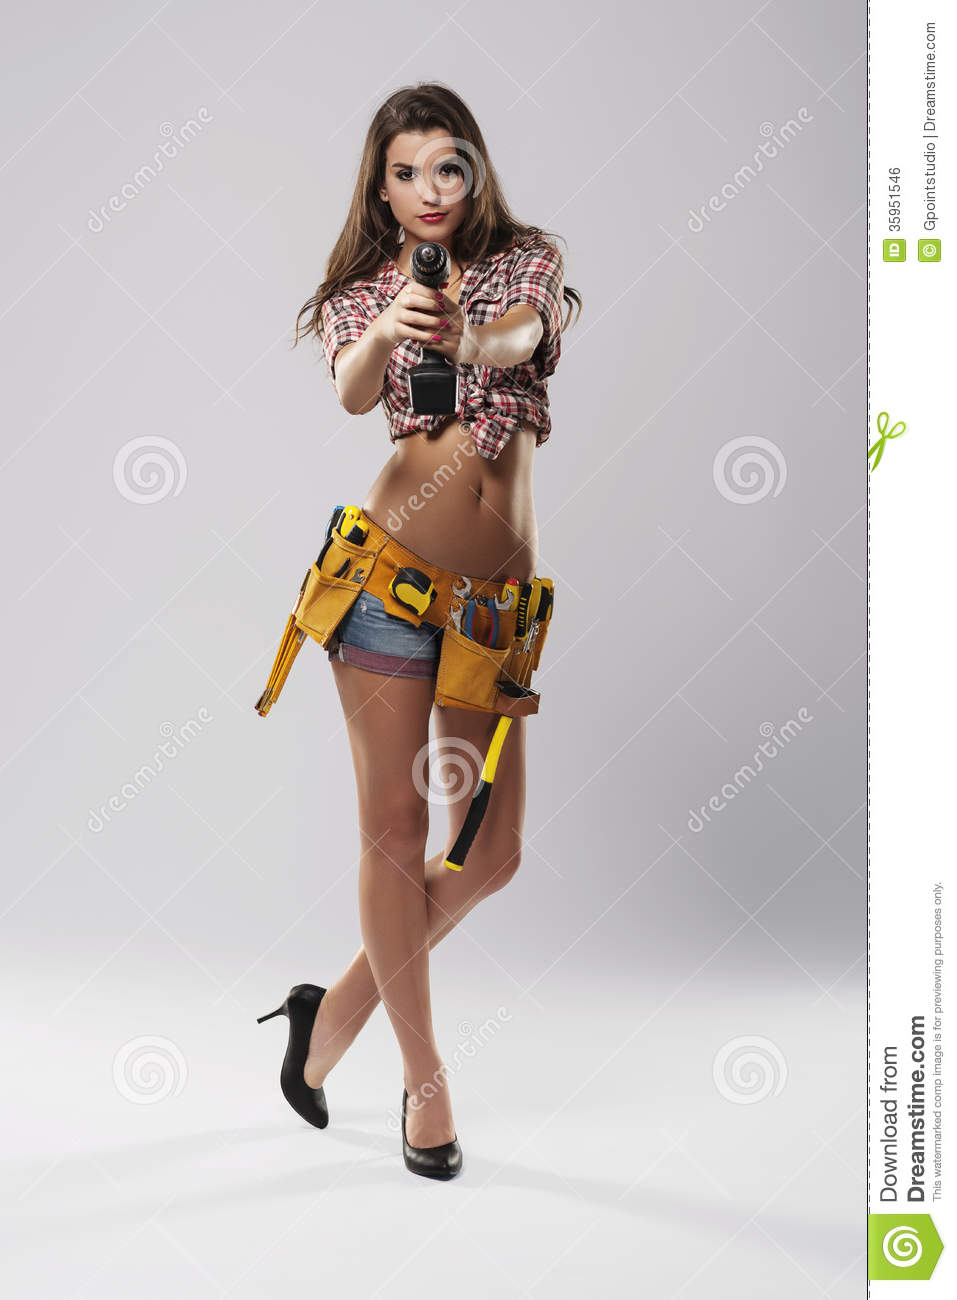 Sexy construction worker girl painting the walls naked 5